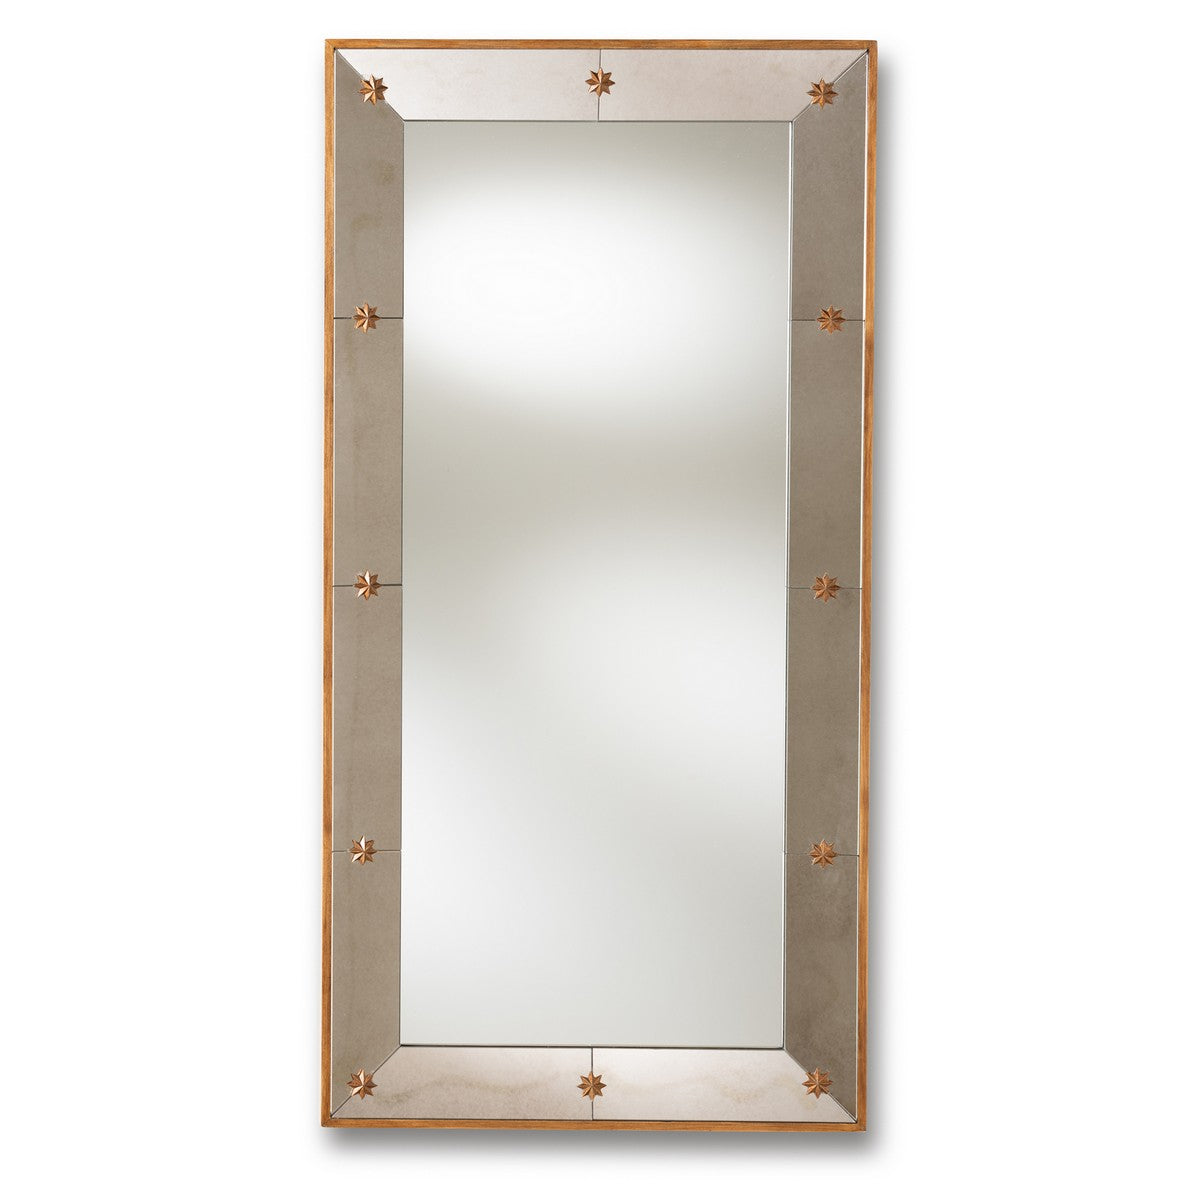 Baxton Studio Almira Modern and Contemporary Antique Gold Finished Rectangular Accent Wall Mirror Baxton Studio-mirrors-Minimal And Modern - 1